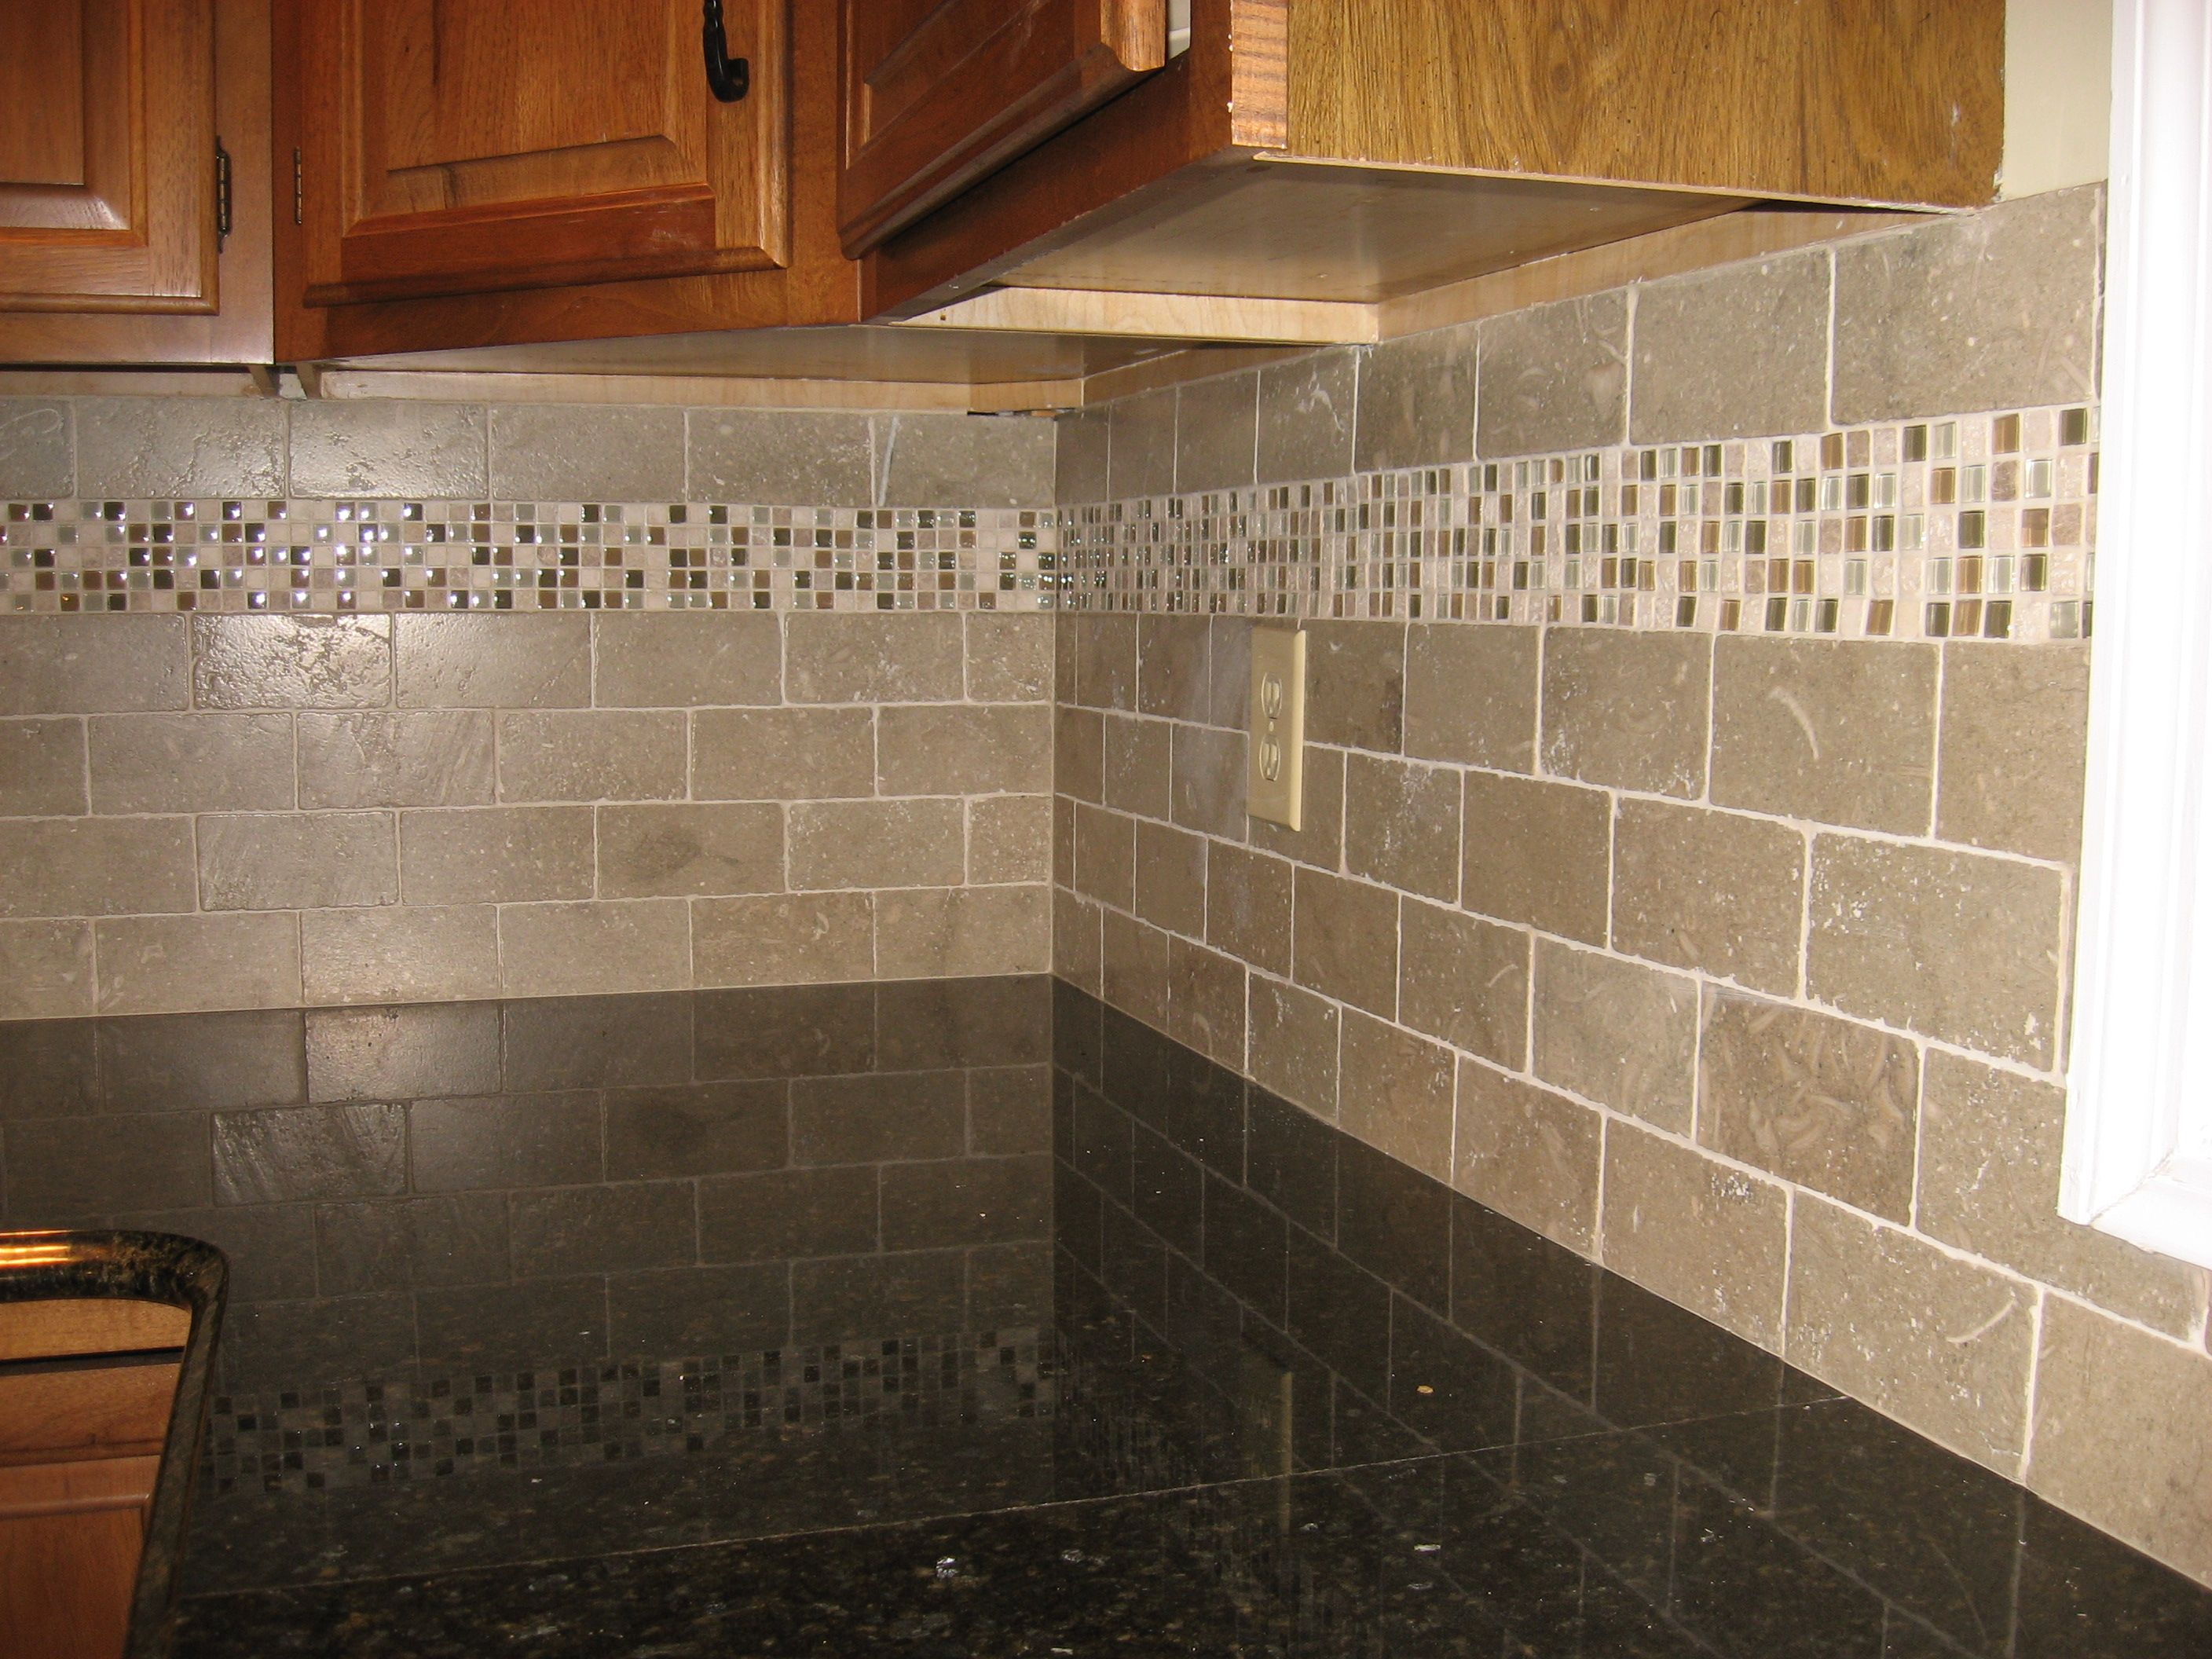 Uncategorized Kitchen Backsplash Tiles Pictures subway tiles with mosaic accents backsplash tumbled limestone tile and